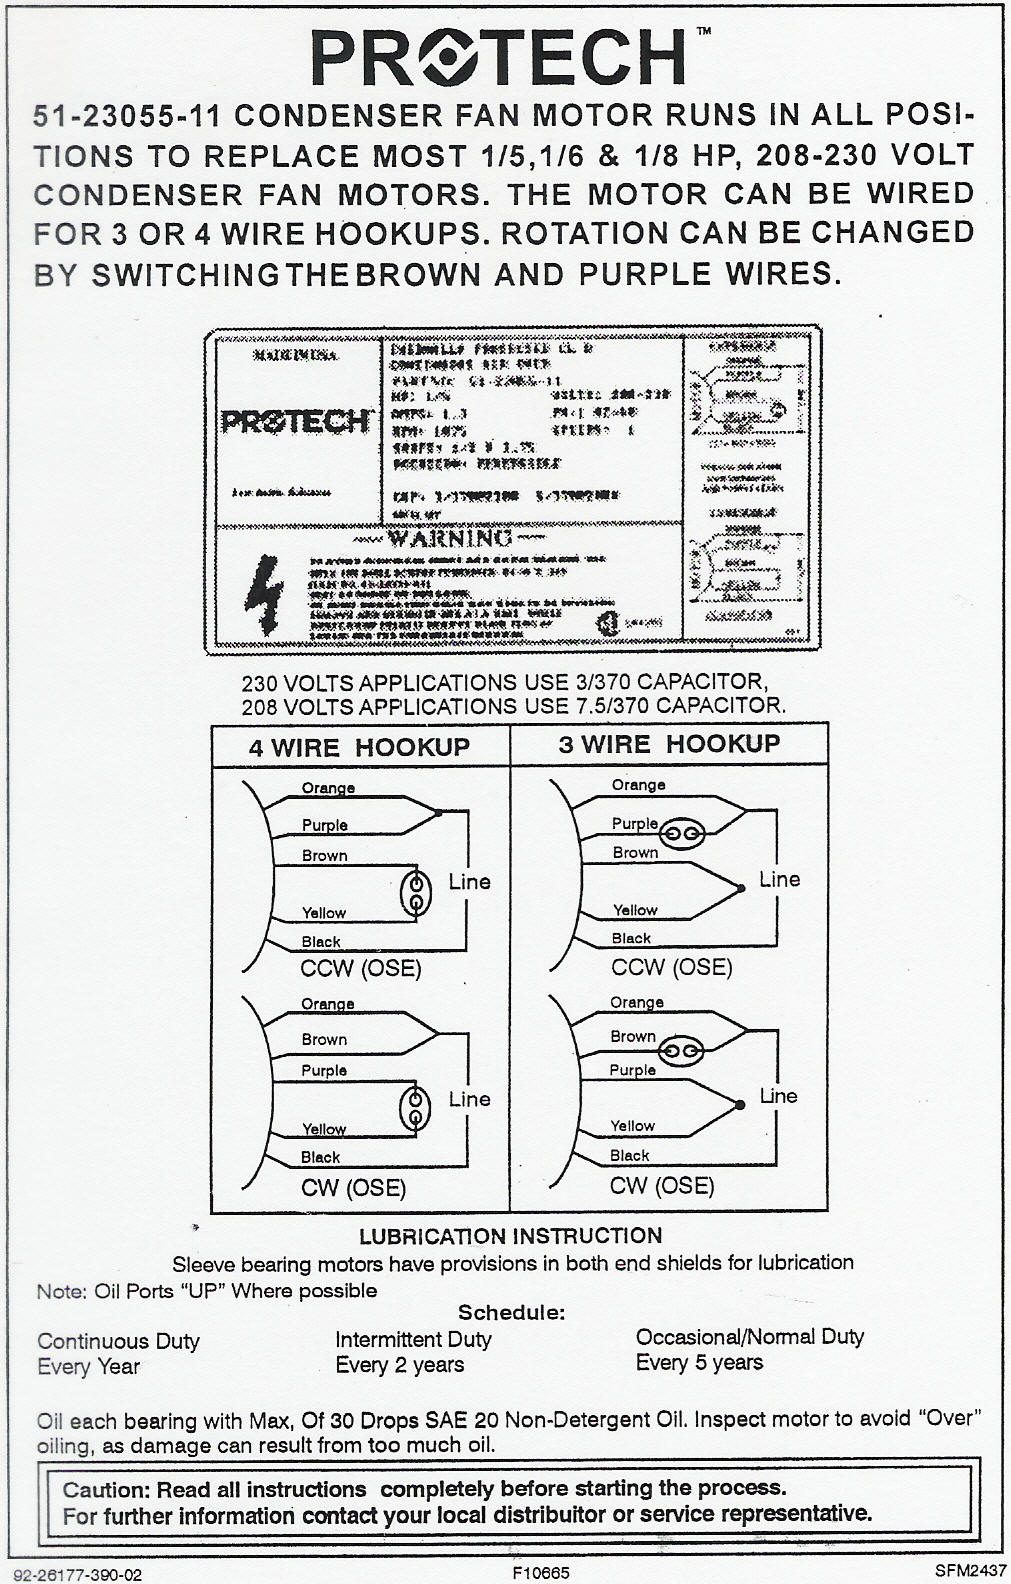 51 23055 11 wiring diagram rheem ruud condenser fan motor 51 23055 11 wiring diagram rheem heat pump wiring schematic at alyssarenee.co